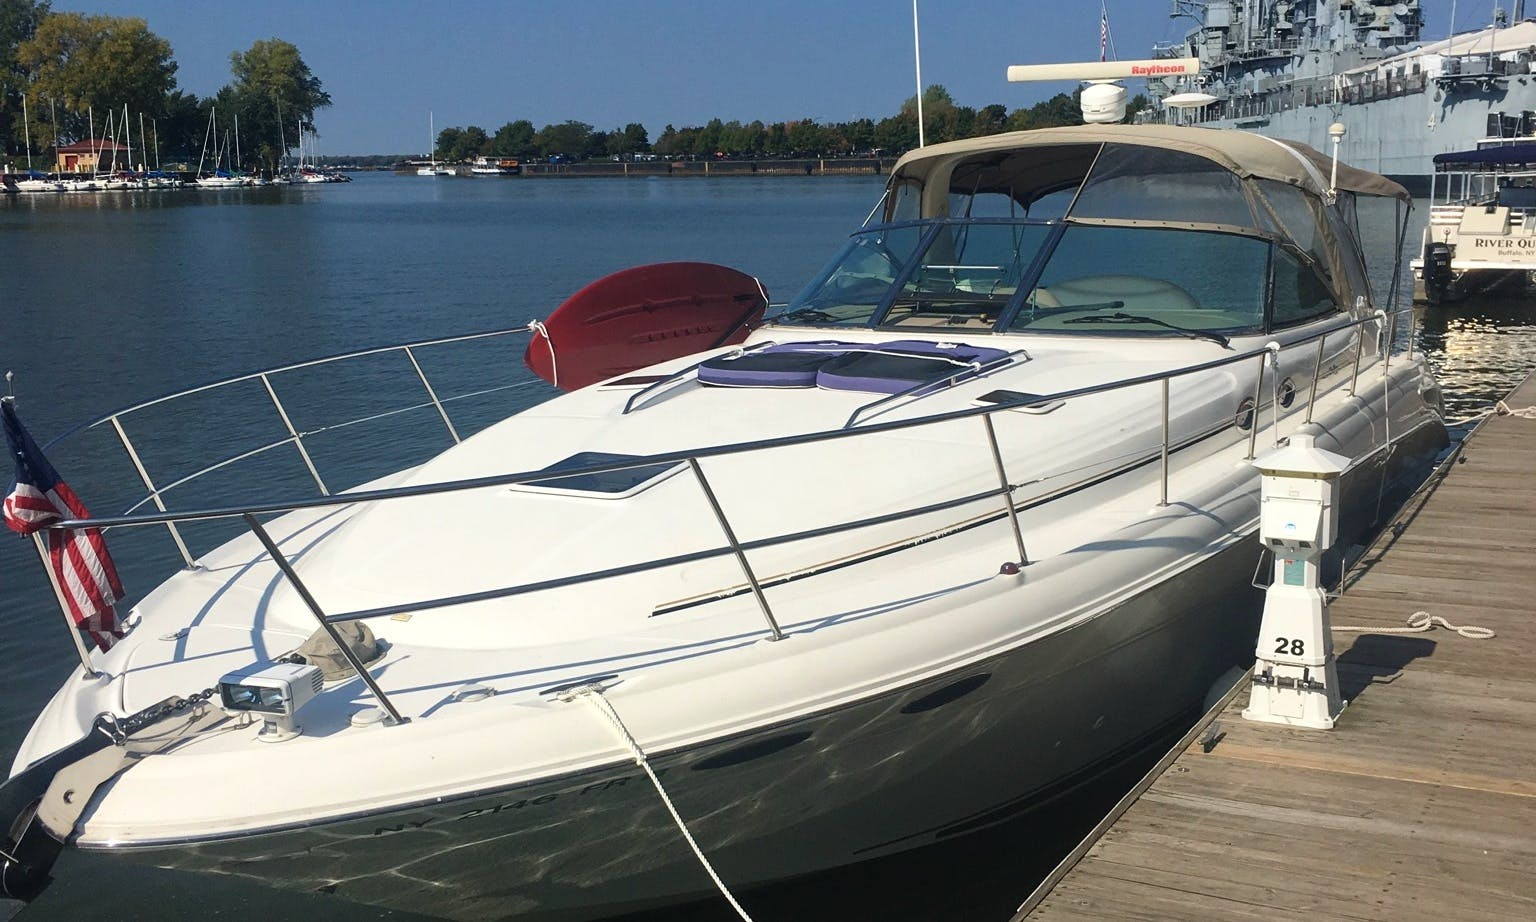 44 foot Sea Ray Yacht for rent in Buffalo, NY